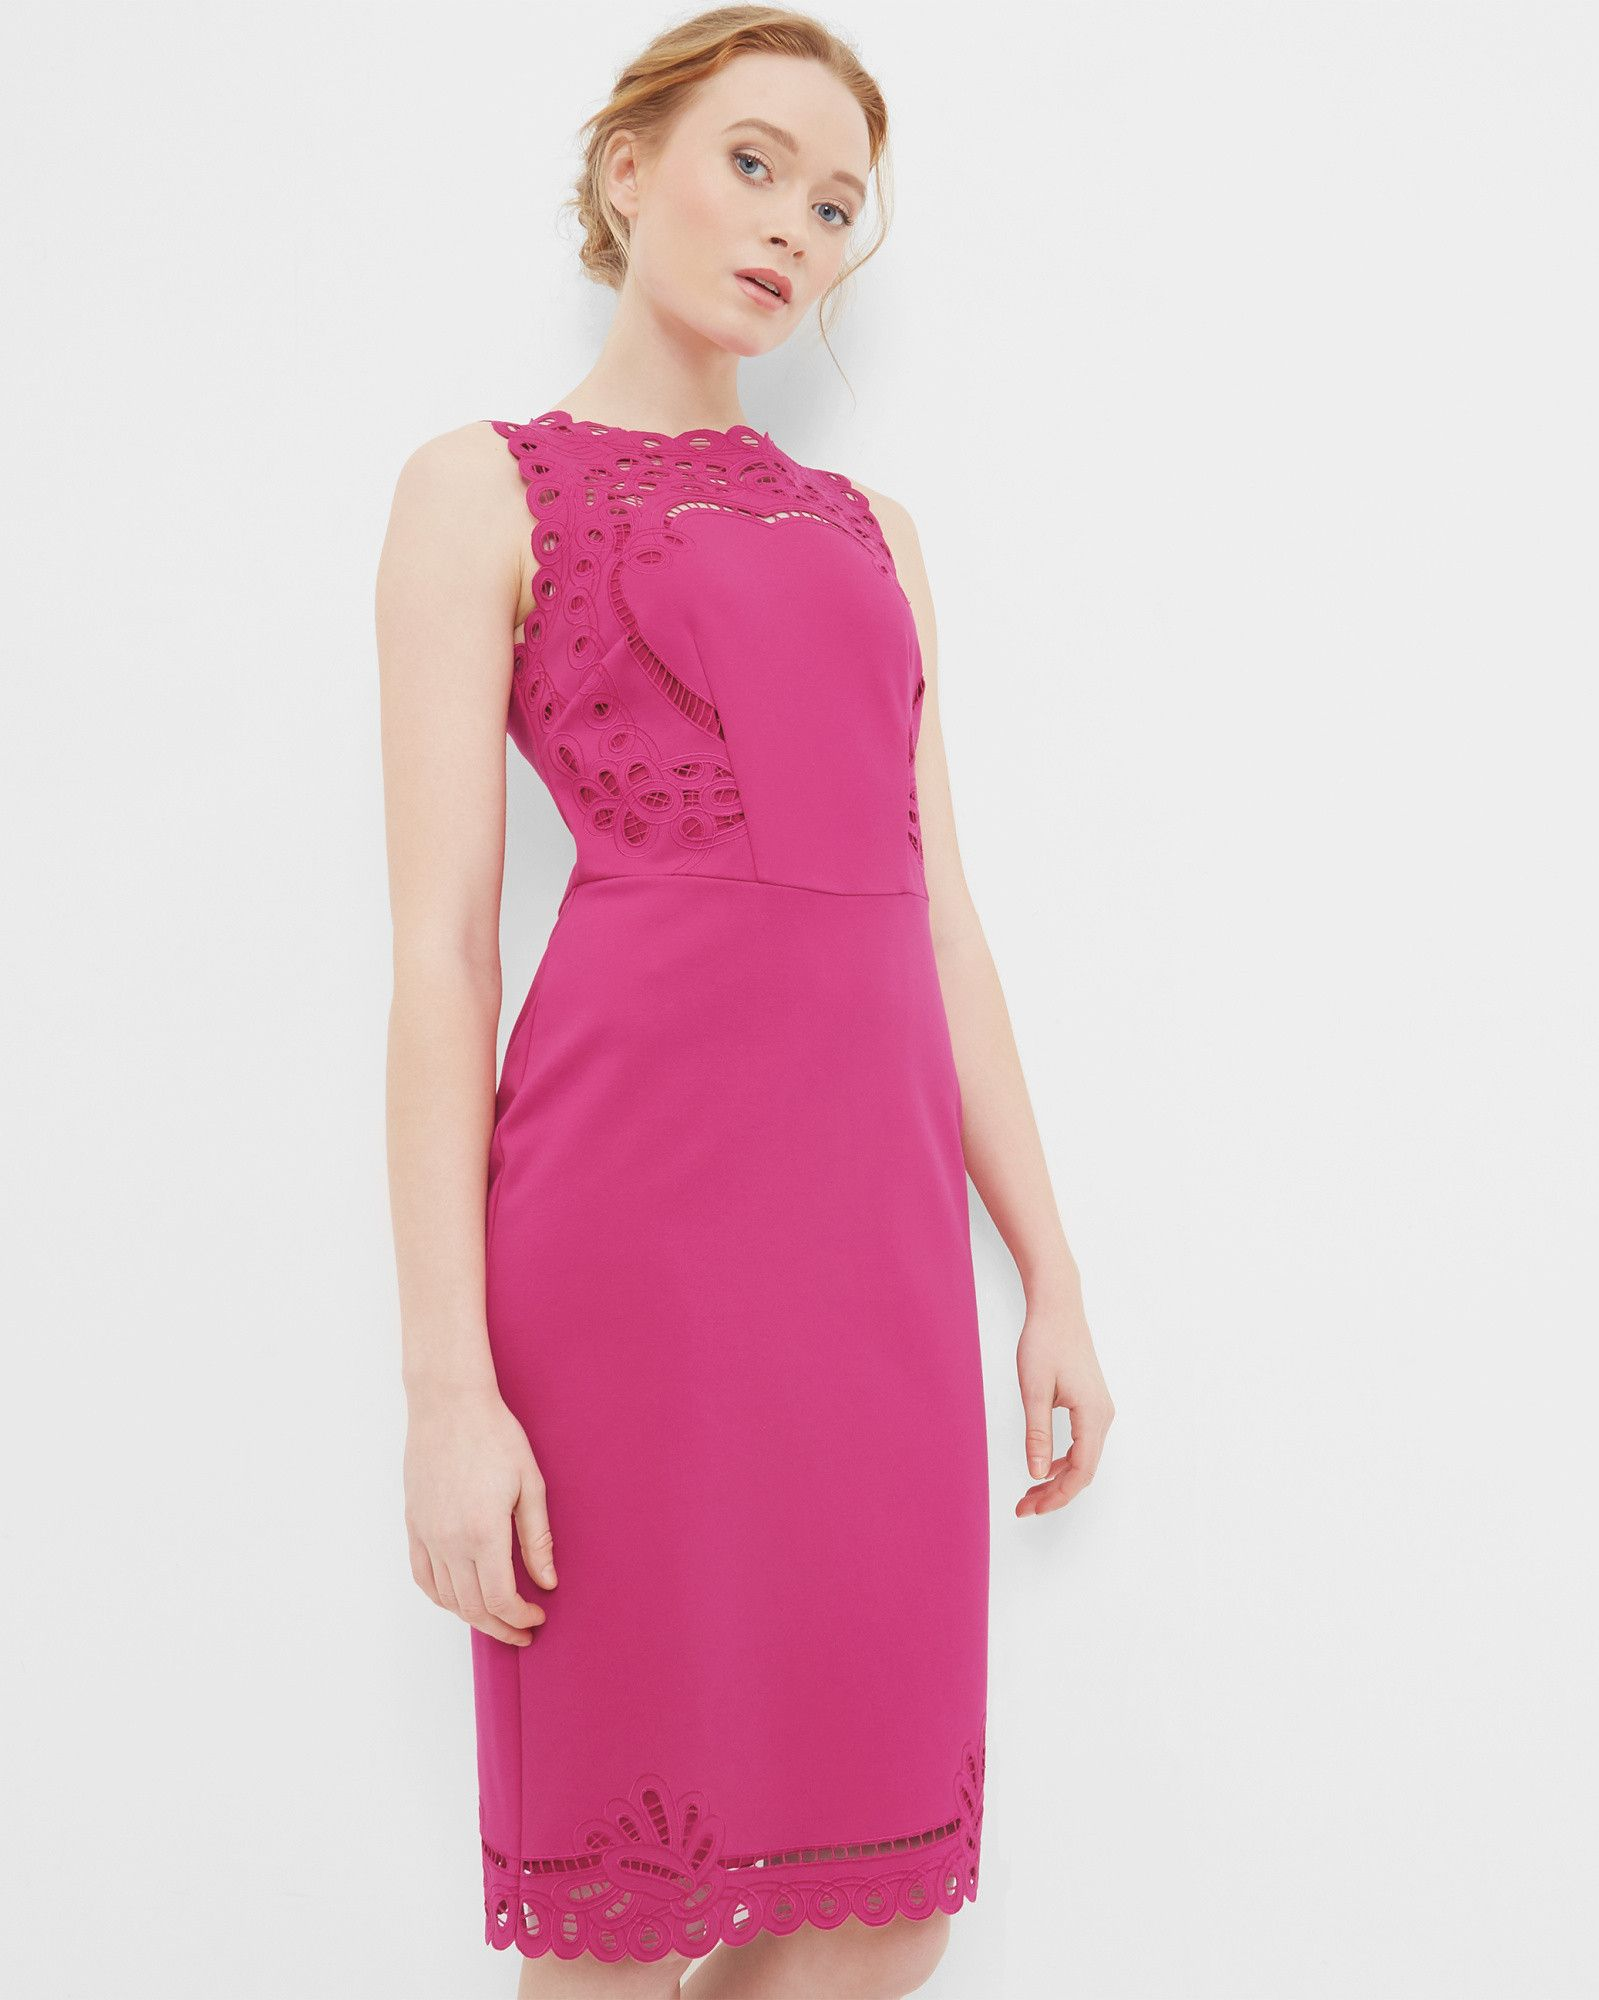 Cut-work bodycon dress - Fuchsia   Dresses   Ted Baker   Actrices ...